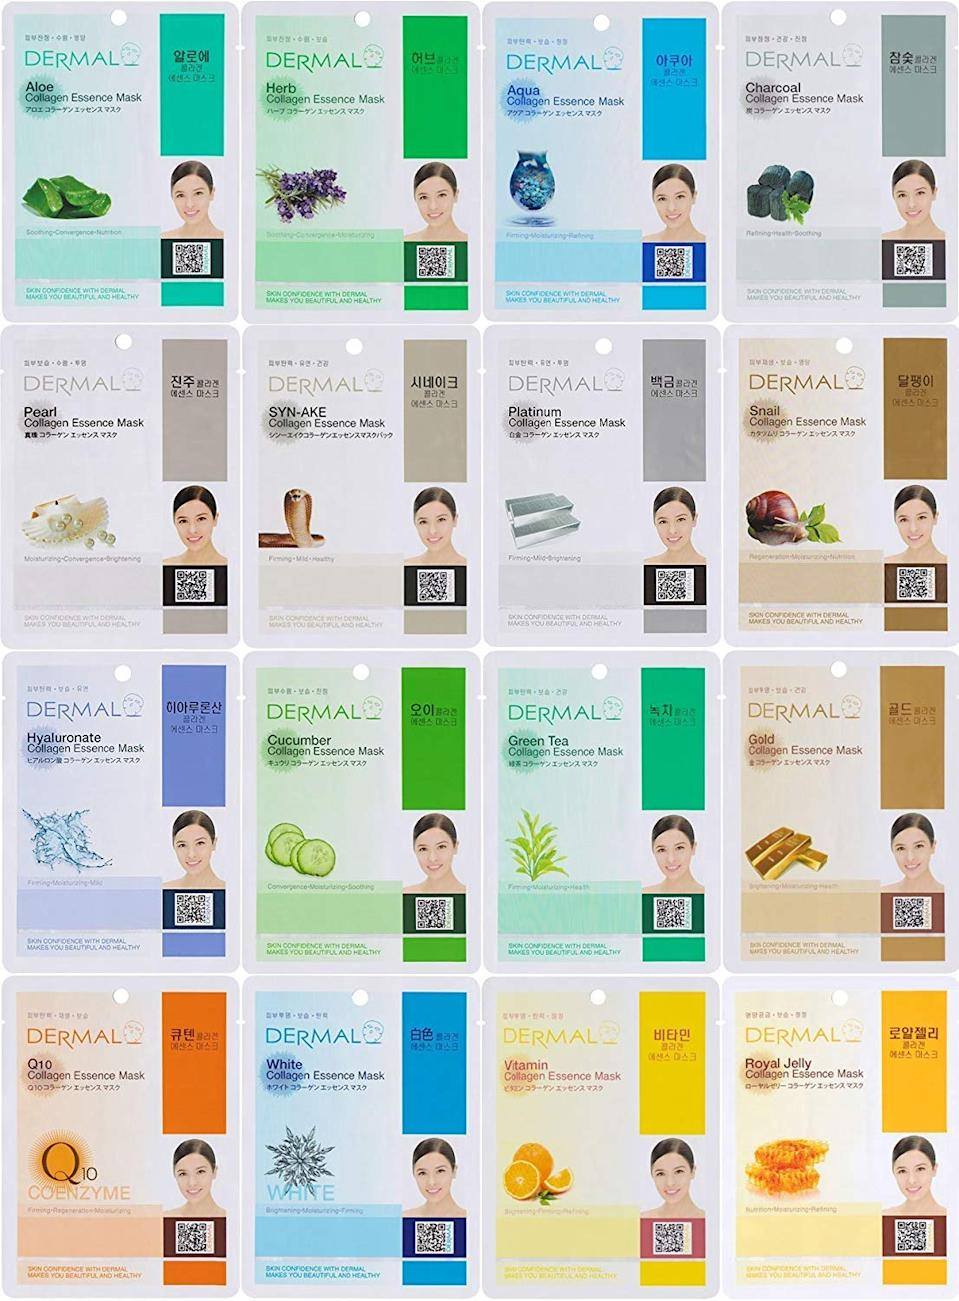 "<h2>Dermal Collagen Essence Face Mask</h2><br>Dermal's highly-rated vitamin E- and collagen sheet masks will liven up your complexion and help shake off any dullness caused by harsh weather (or your COVID mask). <br><br><strong>Dermal</strong> Collagen Essence Facial Mask (Set of 16), $, available at <a href=""https://www.amazon.com/Dermal-Korea-Collagen-Essence-Facial/dp/B00BAM7F8C/ref=zg_bsms_beauty_82"" rel=""nofollow noopener"" target=""_blank"" data-ylk=""slk:Amazon"" class=""link rapid-noclick-resp"">Amazon</a>"